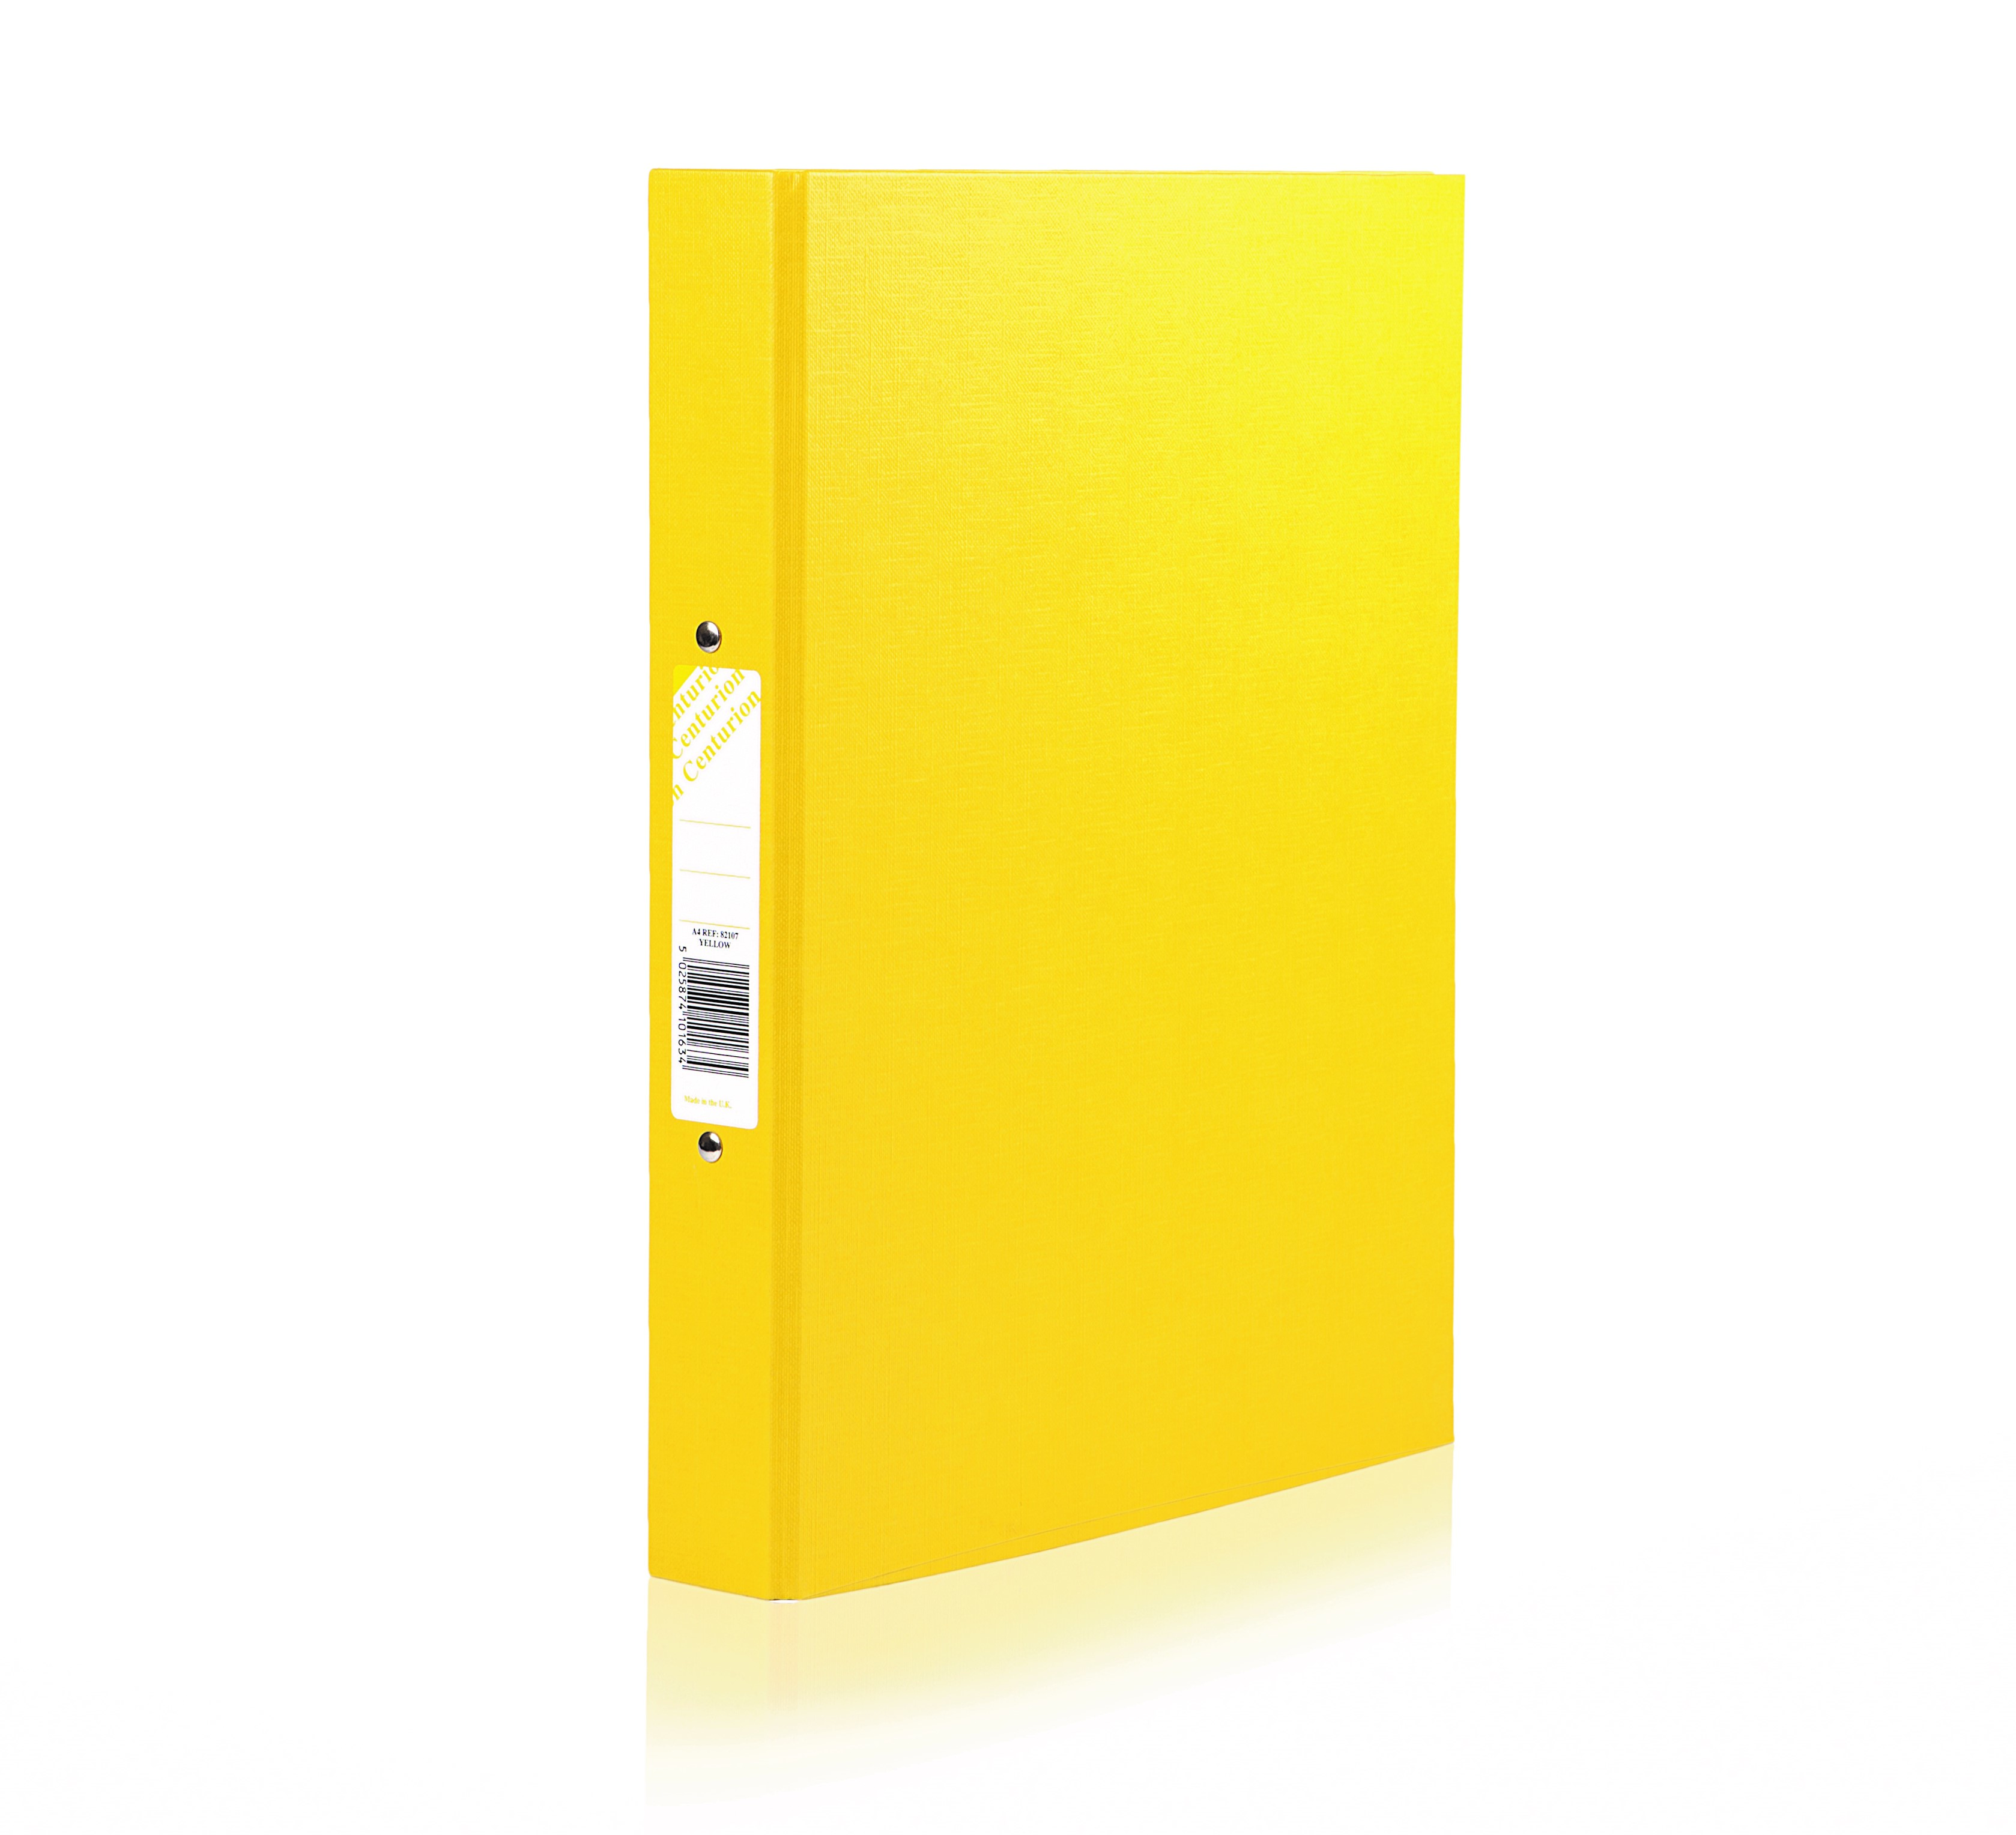 Centurion Classic Ring Binder 2-OR 25mm A4 Yellow PK10